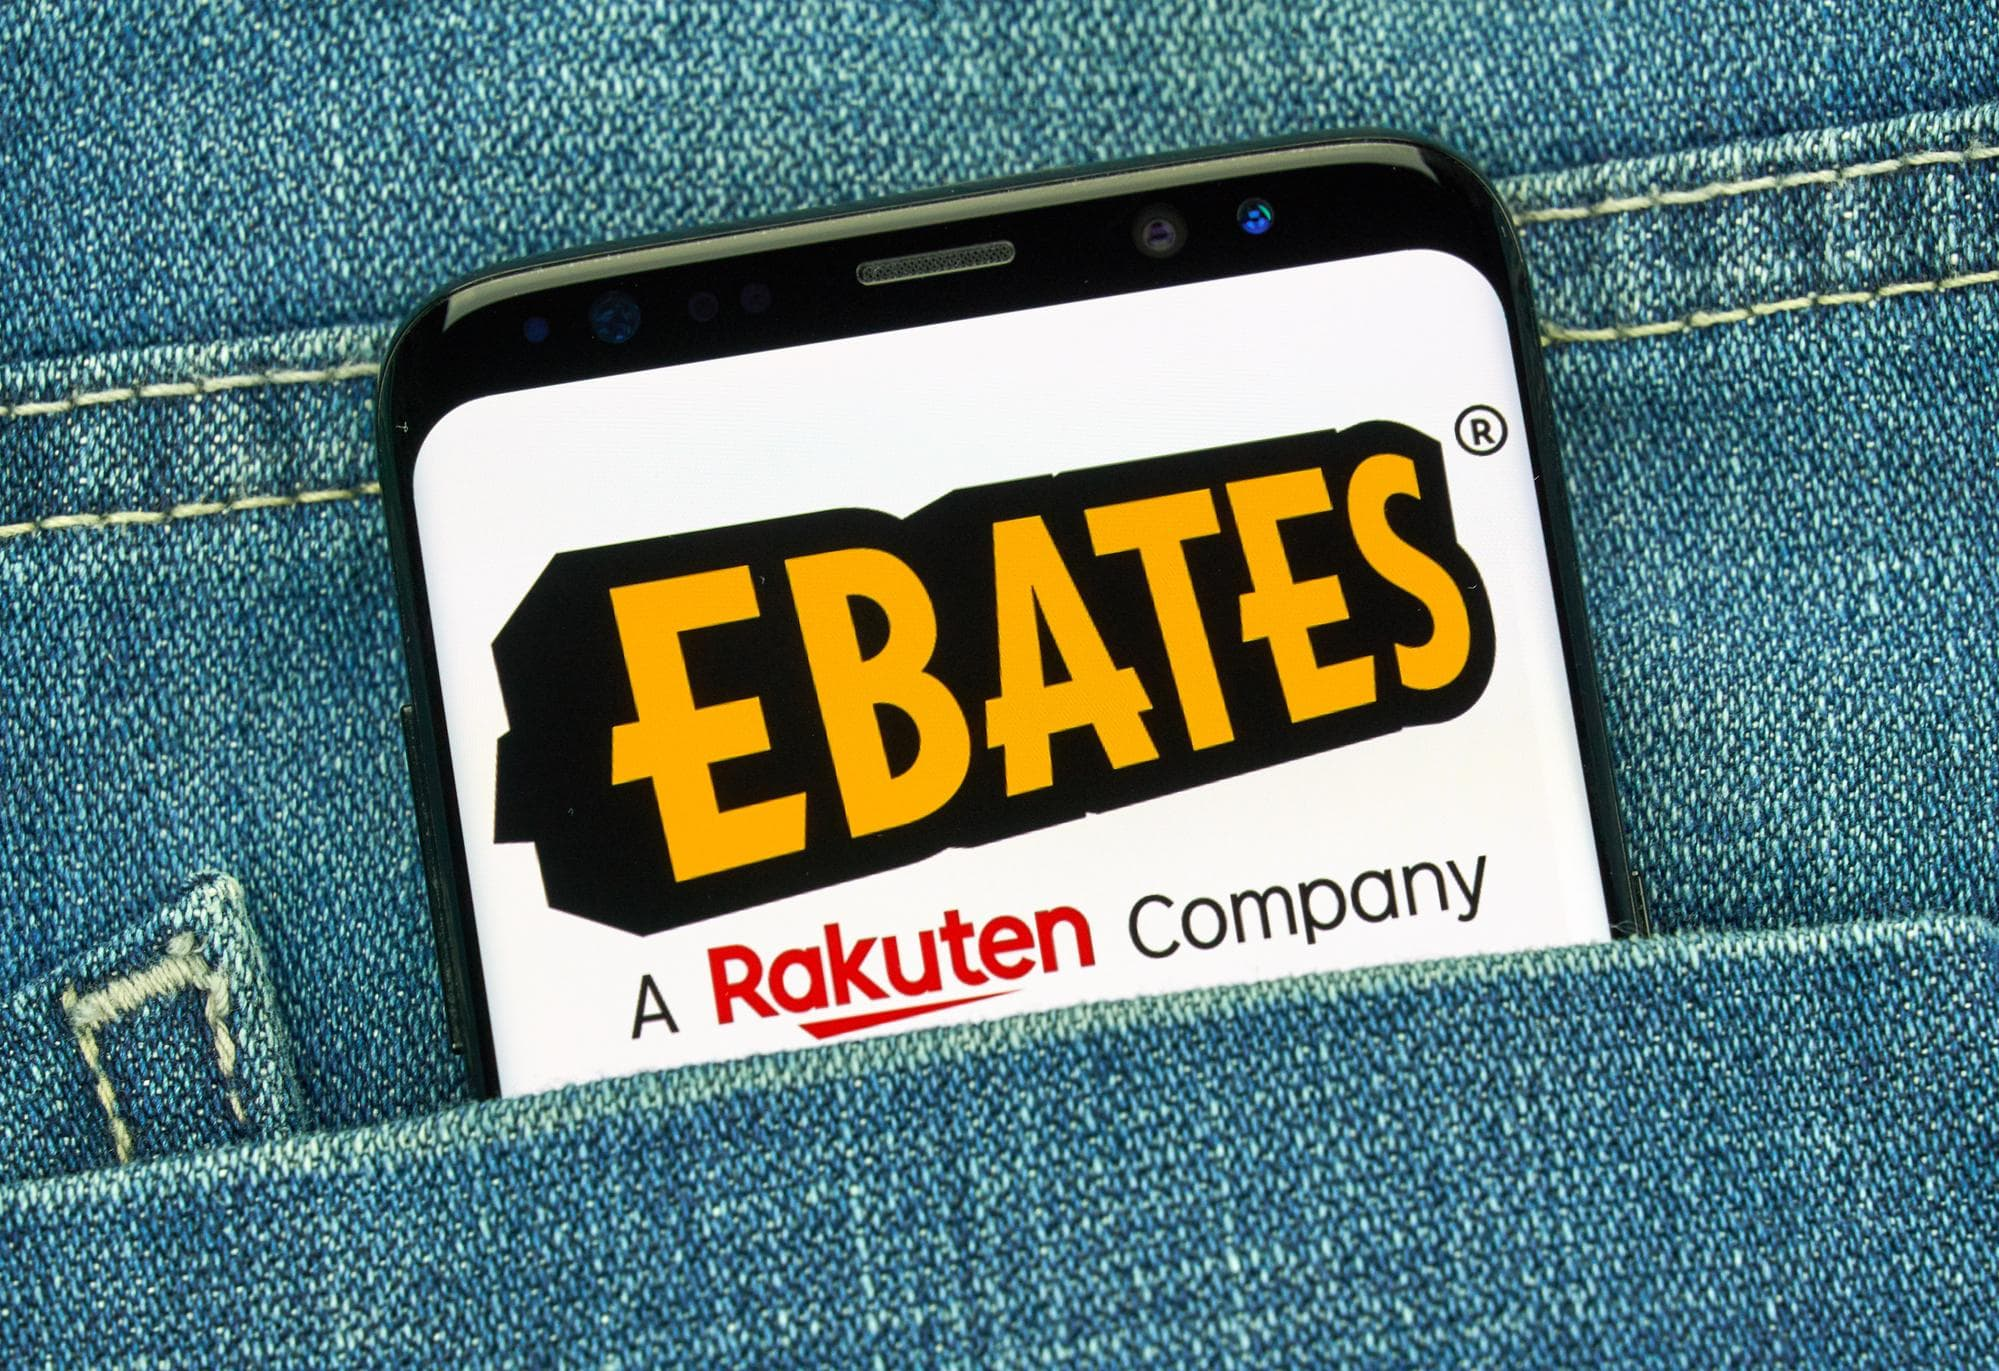 Rakuten (Ebates) Review: How Does It Work? [Full Guide] 2 | Mycashback.net